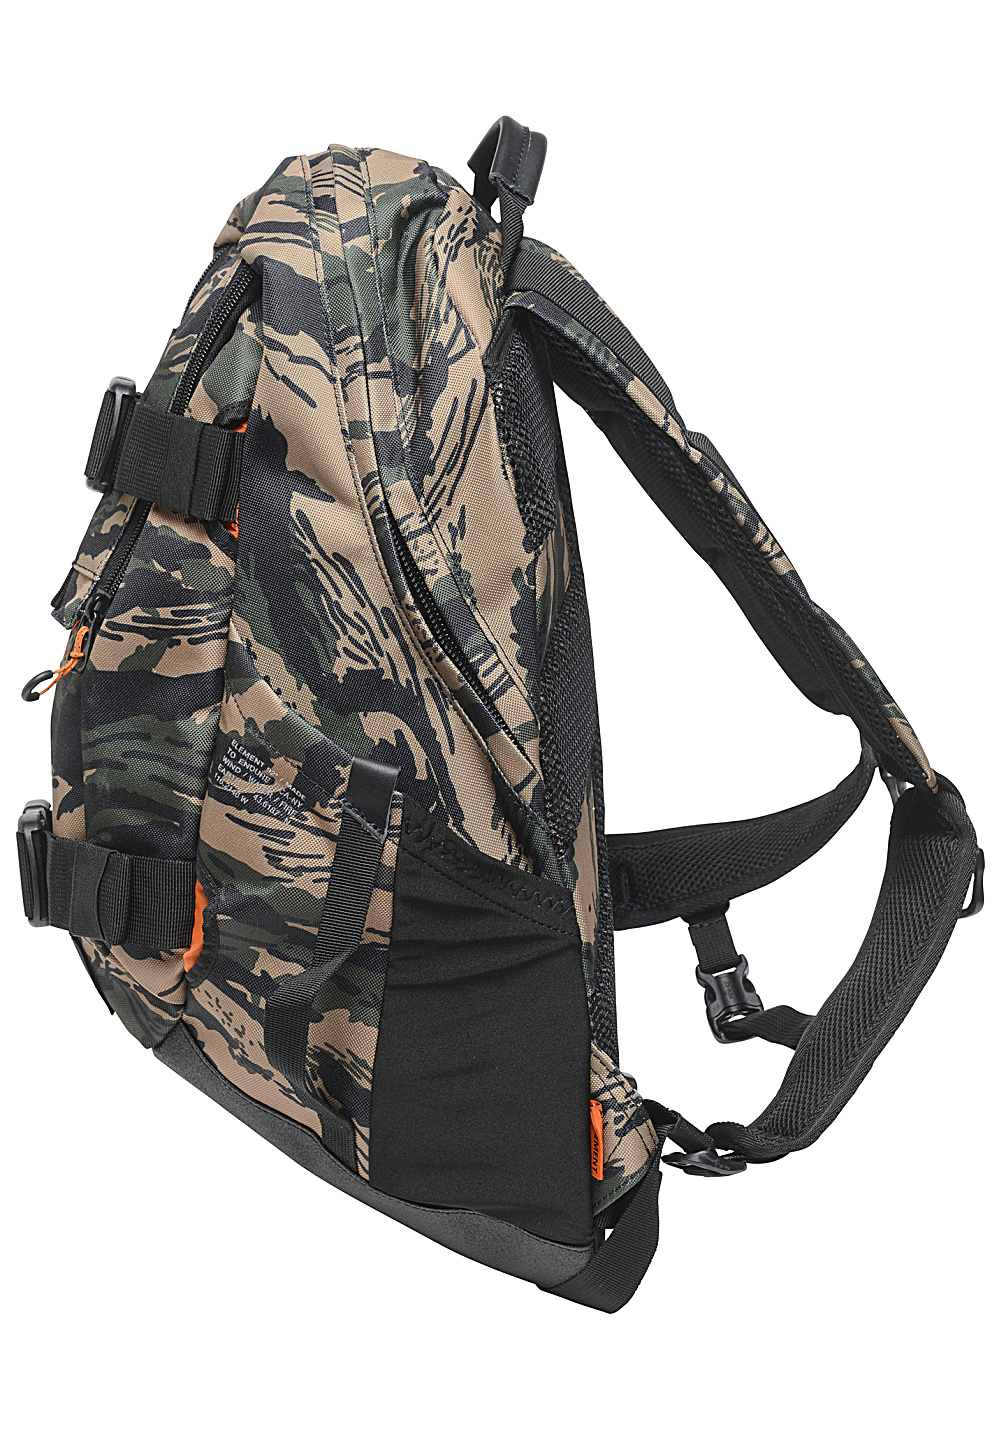 660c9d55367 Element The Daily 25L - Rugzak - Camouflage - Planet Sports